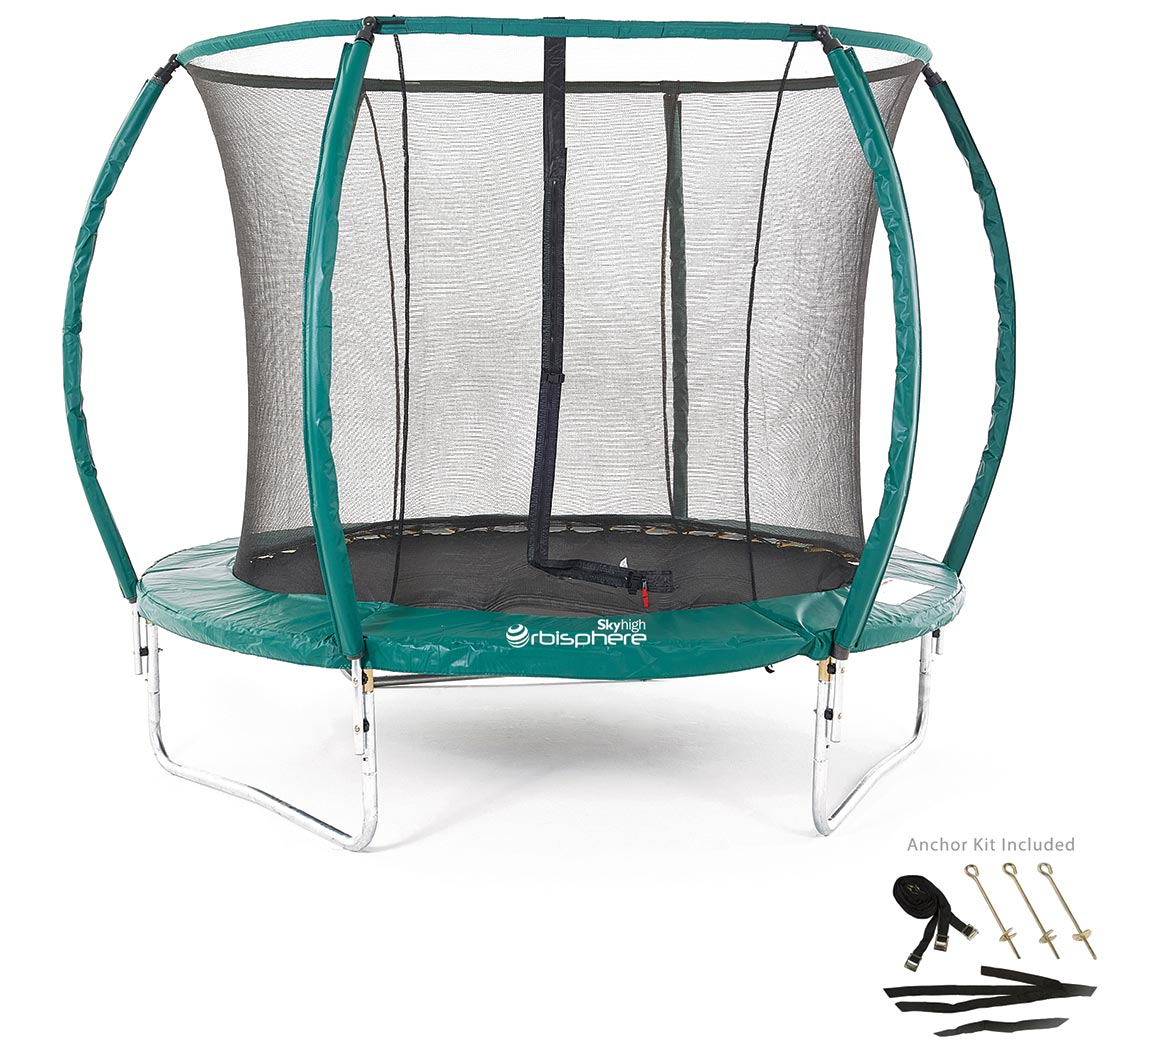 8ft Trampoline With Enclosure, Anchor Kit And Ladder